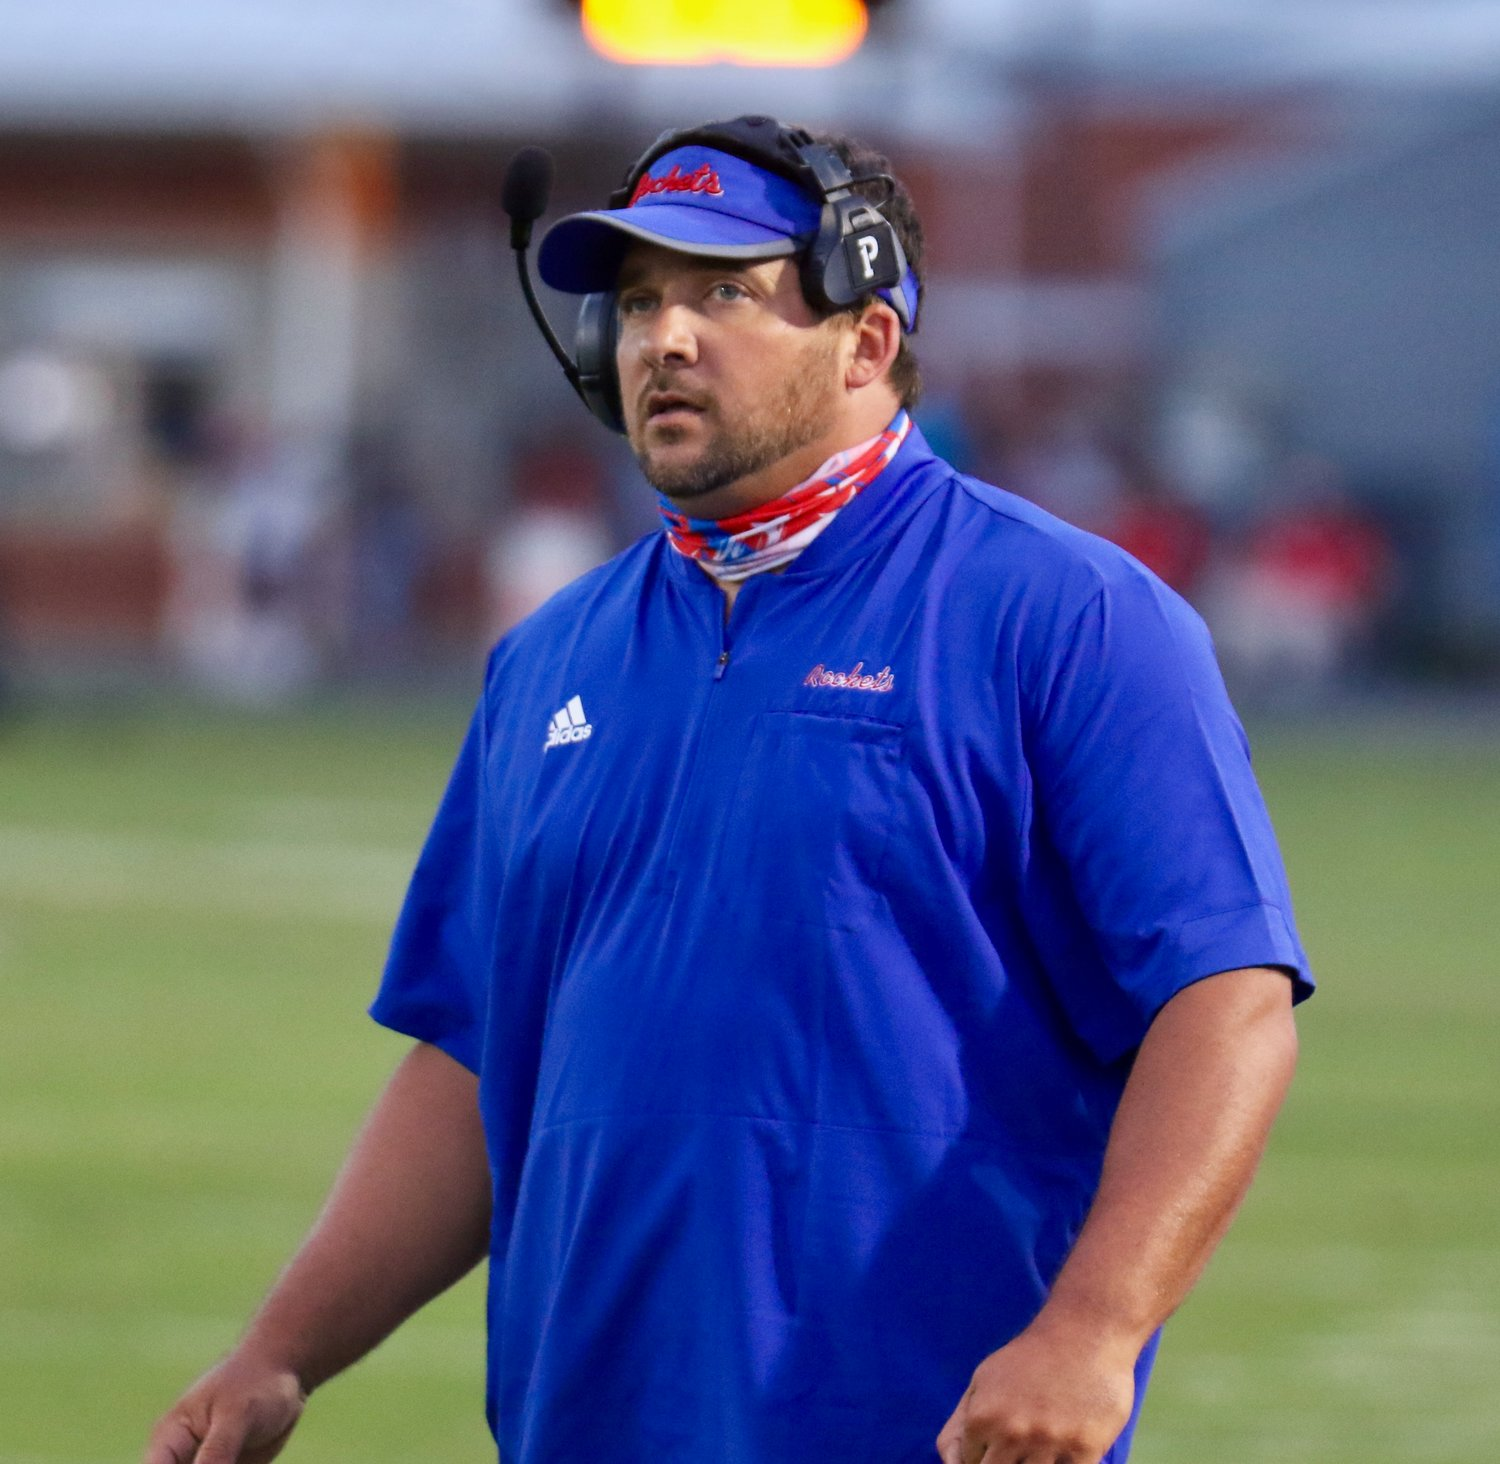 Rockets head coach Patrick Schoolar looks at the scoreboard as seconds tick off in the Neshoba Central's win over Tupelo.